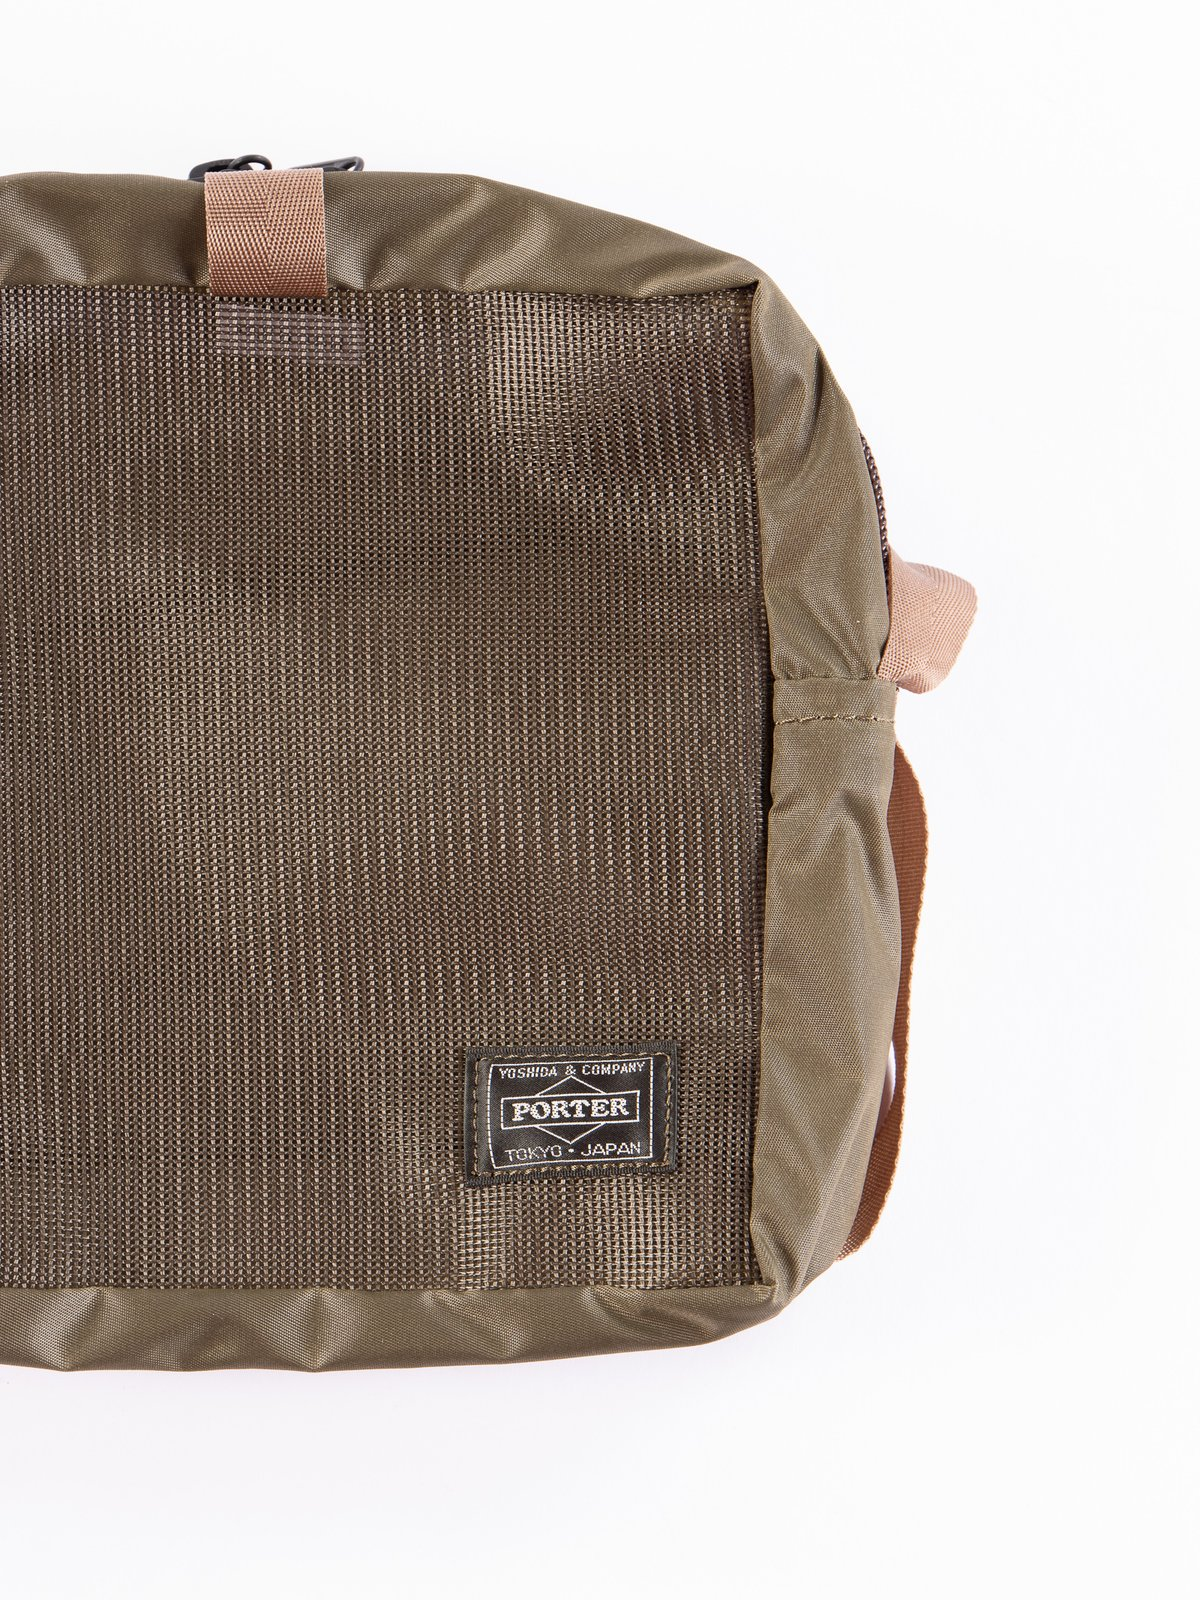 Olive Drab Snack Pack 09806 Pouch Small - Image 2